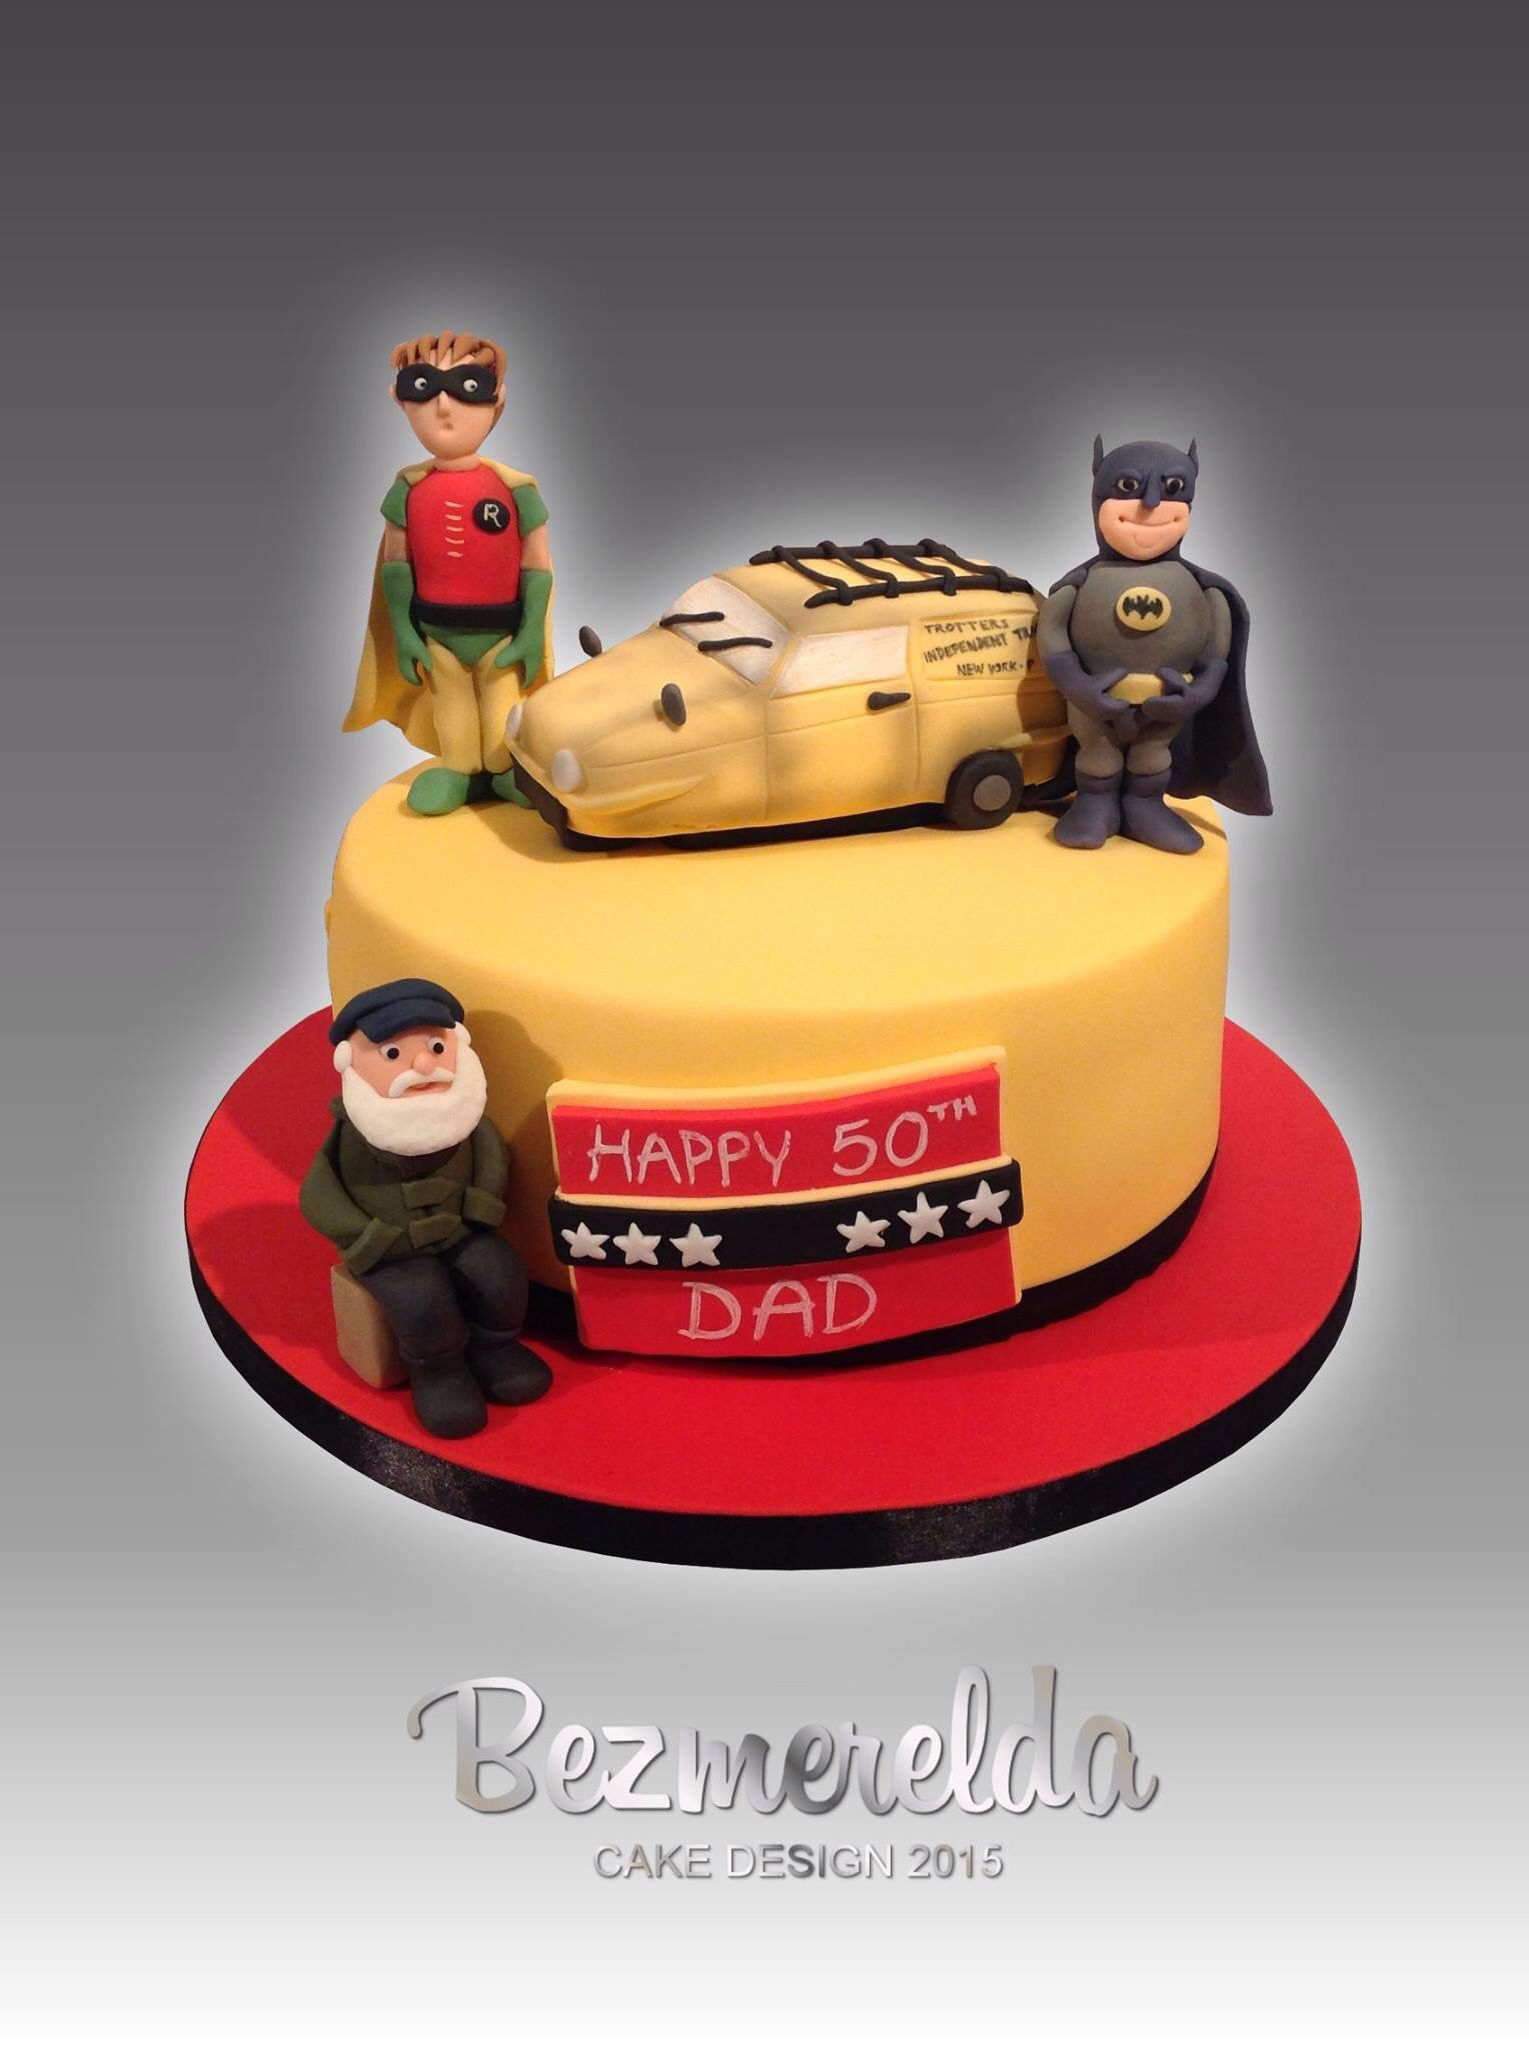 Only Fools And Horses cake Made by Bezmerelda Cake